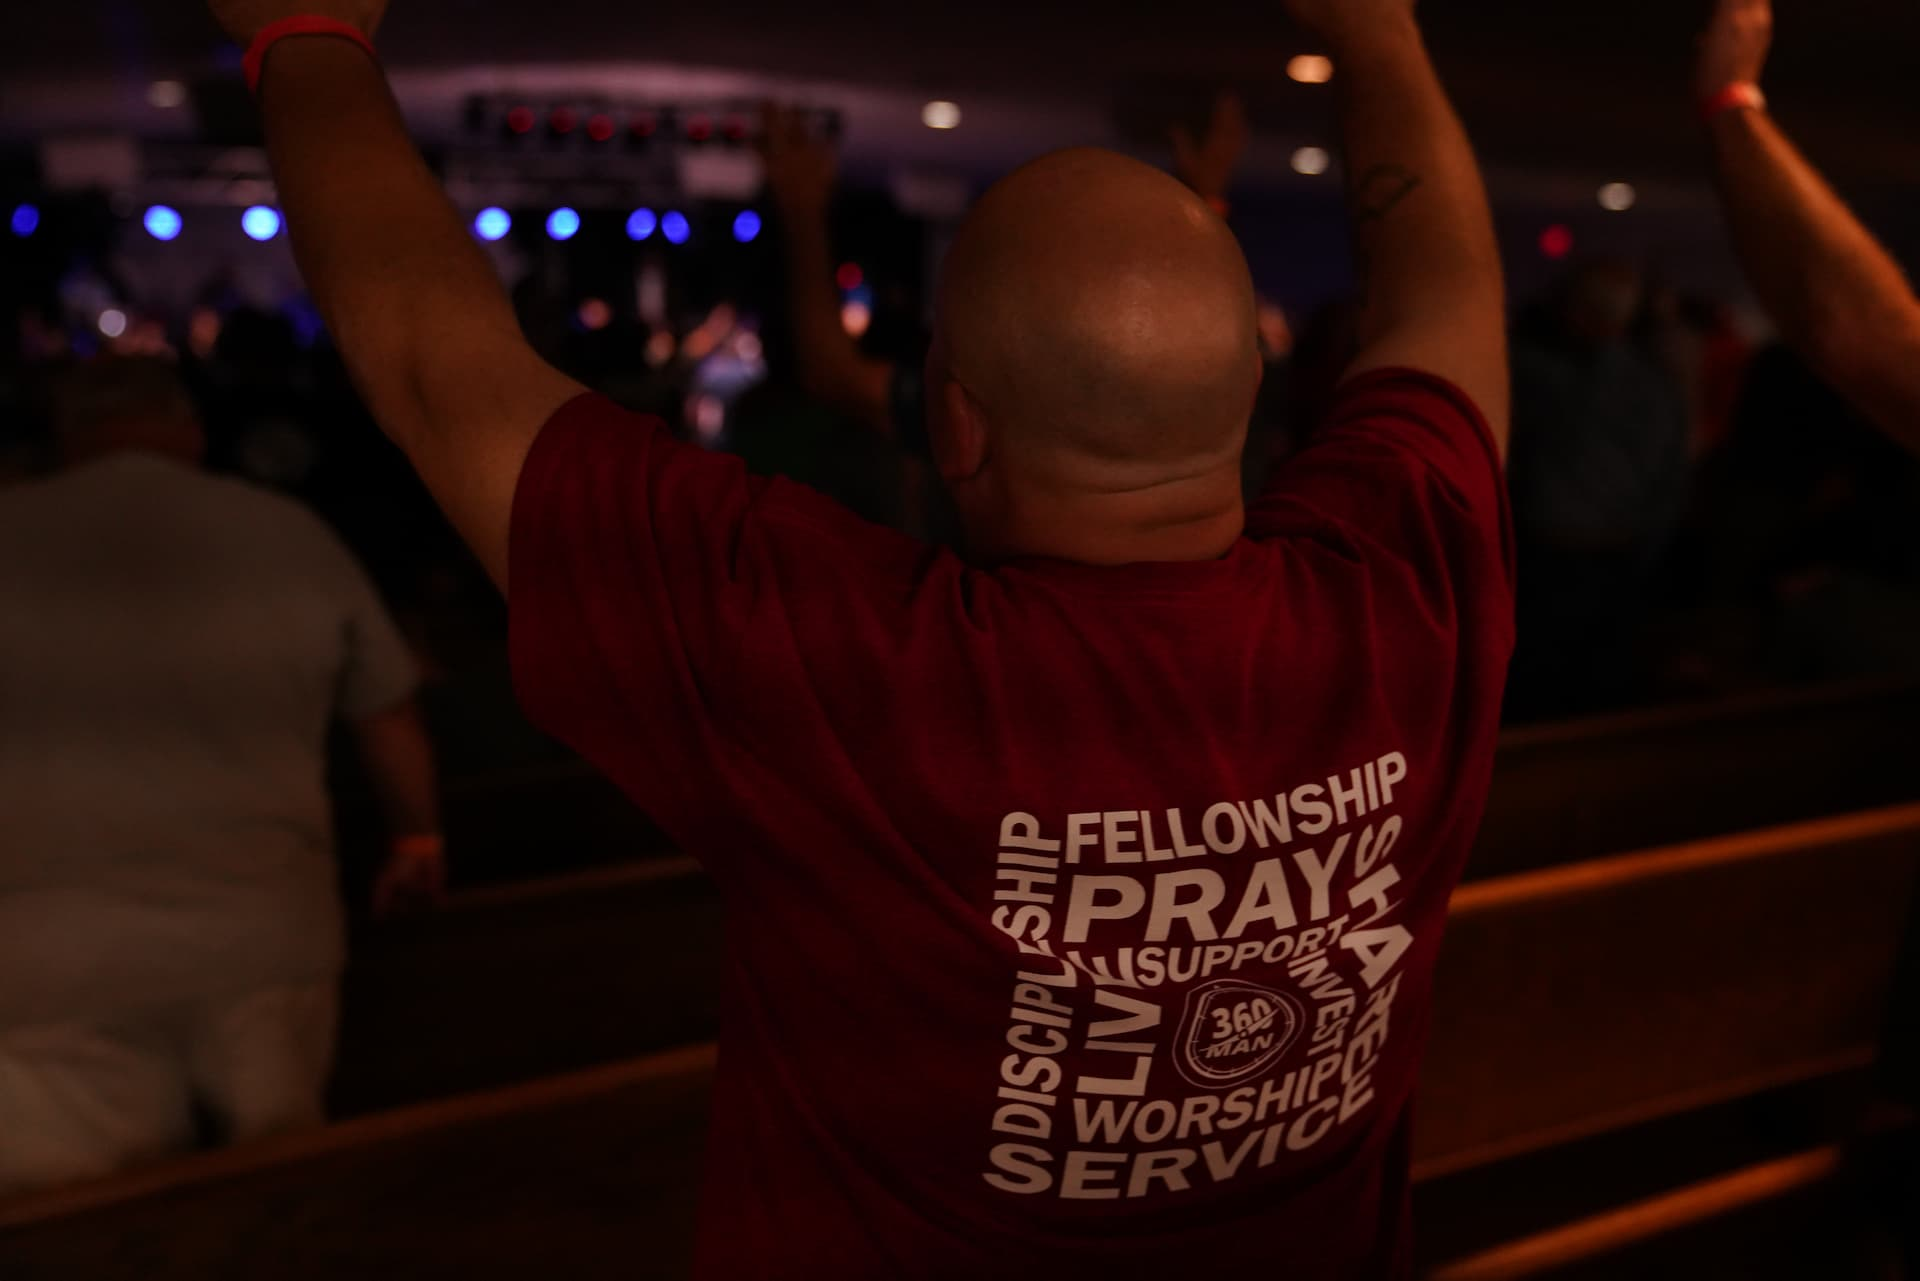 360 Man in red shirt with arms raised worshipping God